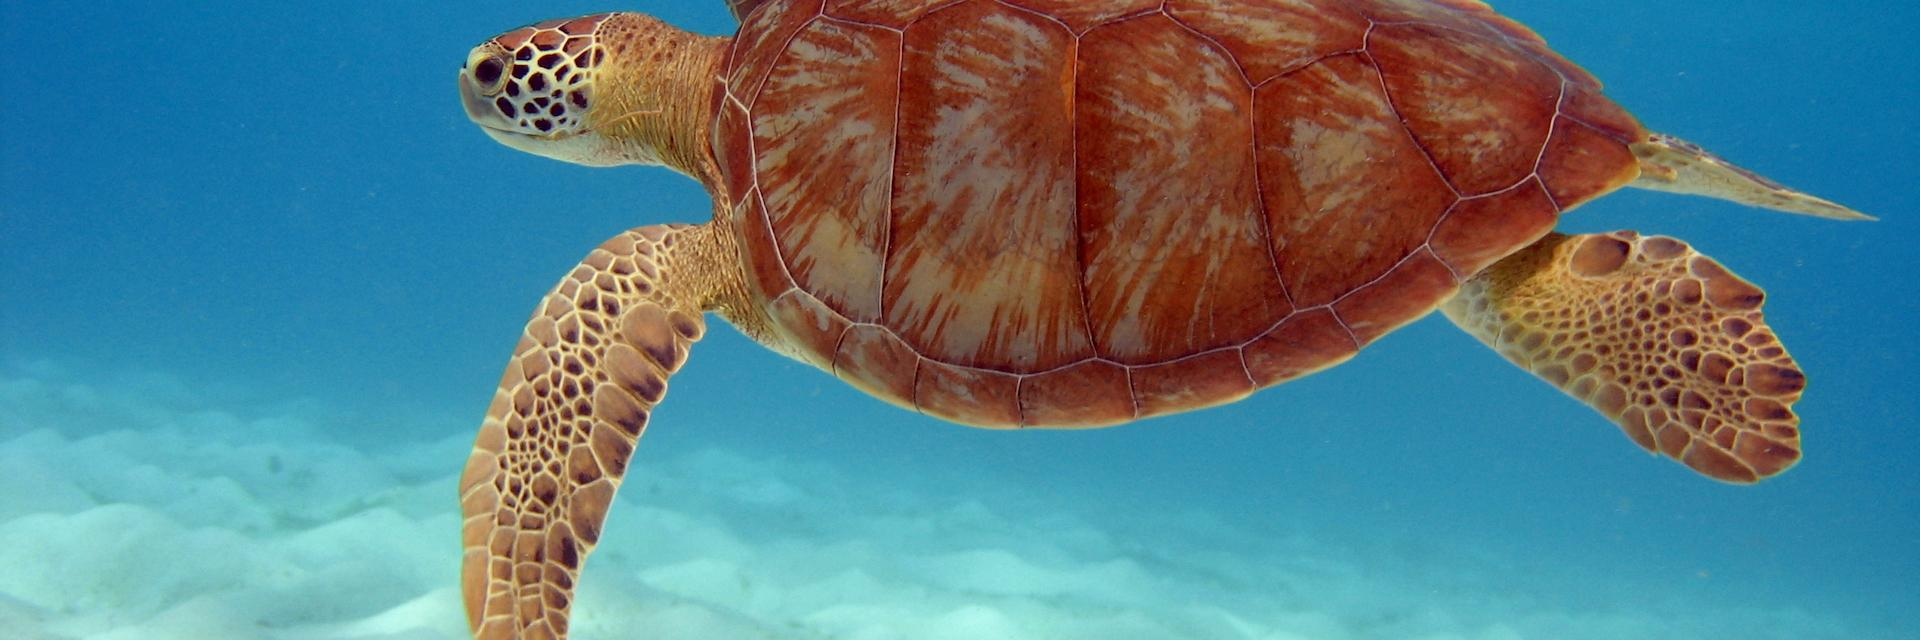 Sea turtle, Tobago Cays, The Grenadines